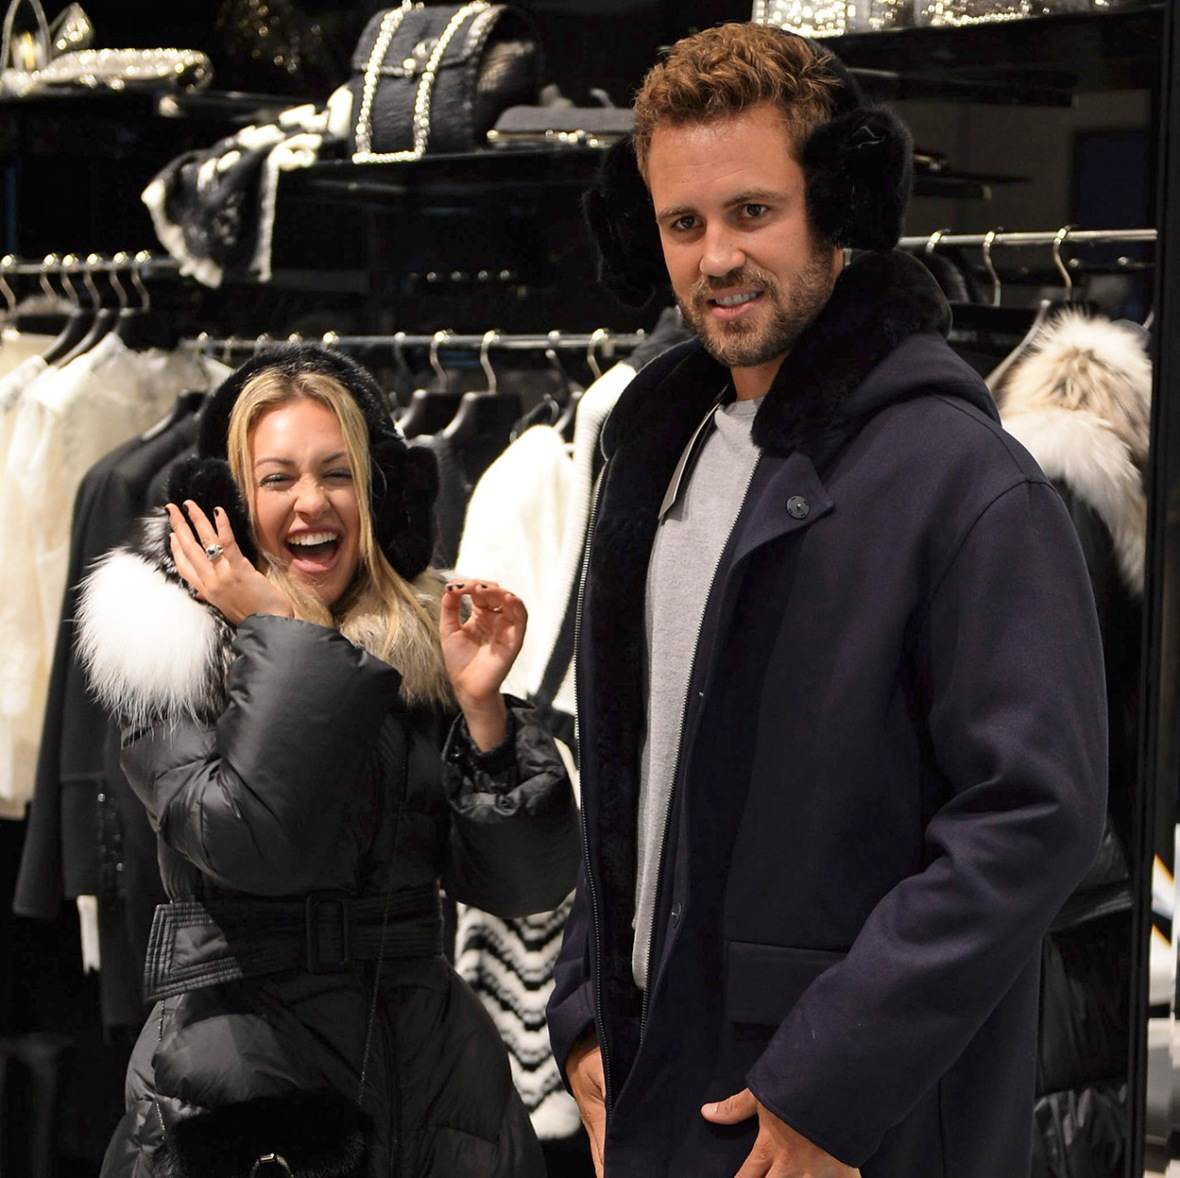 nick viall corinne olympios getty images